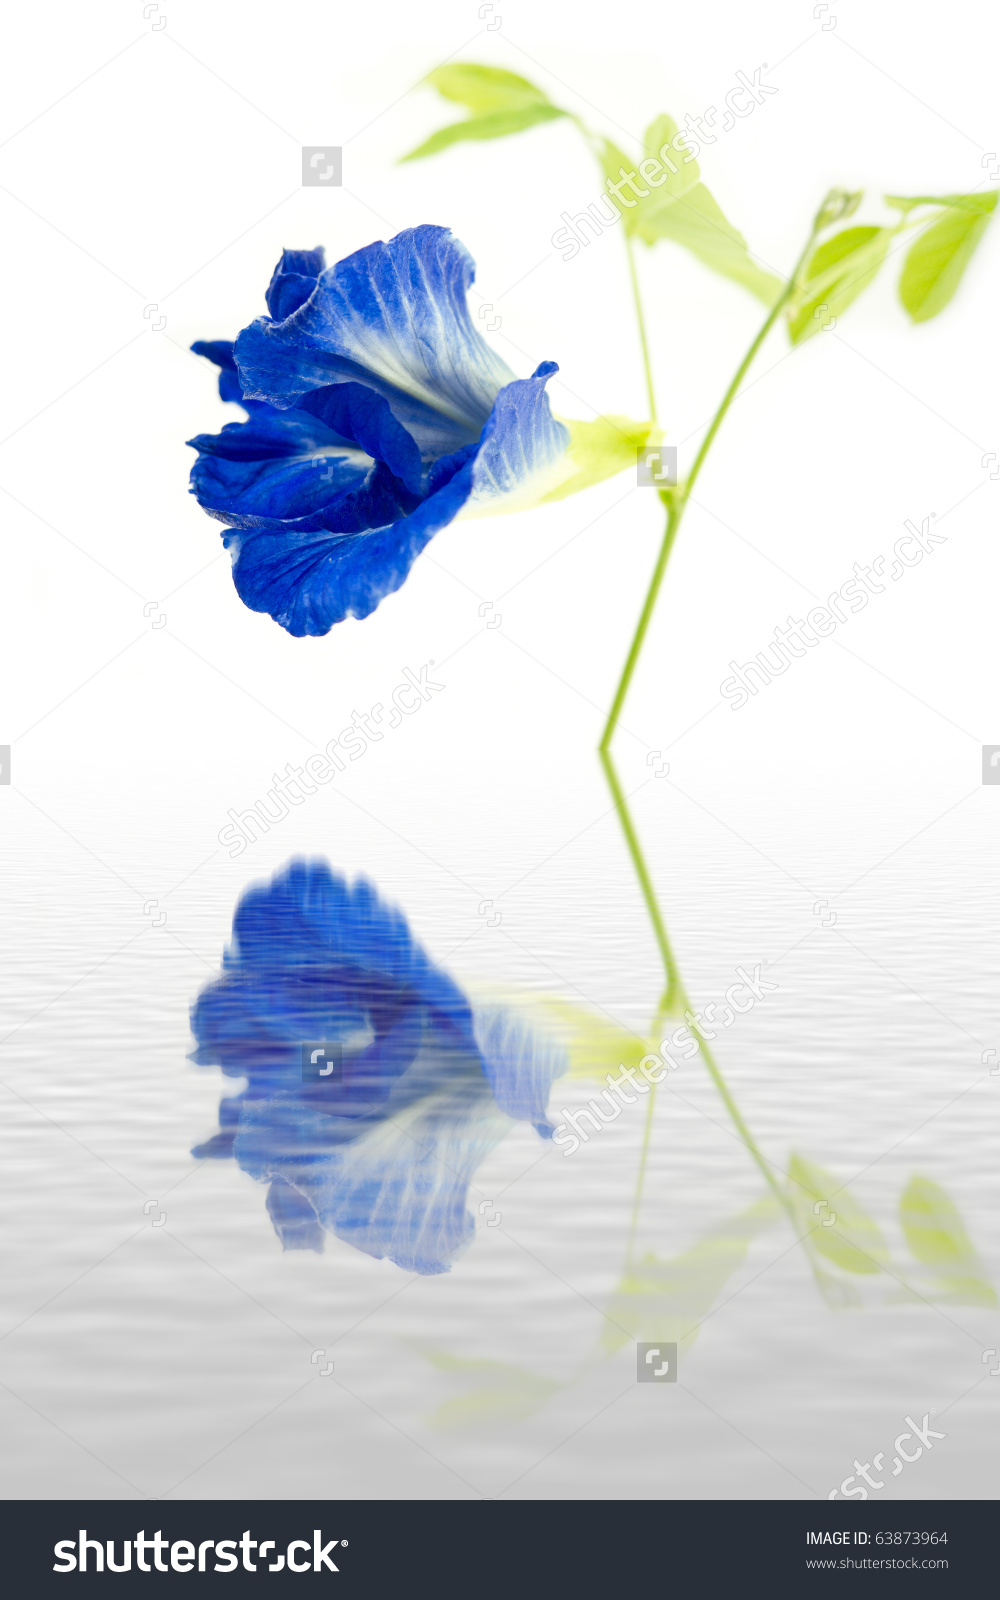 Blue Butterfly Pea Flower And Water Reflections Stock Photo.